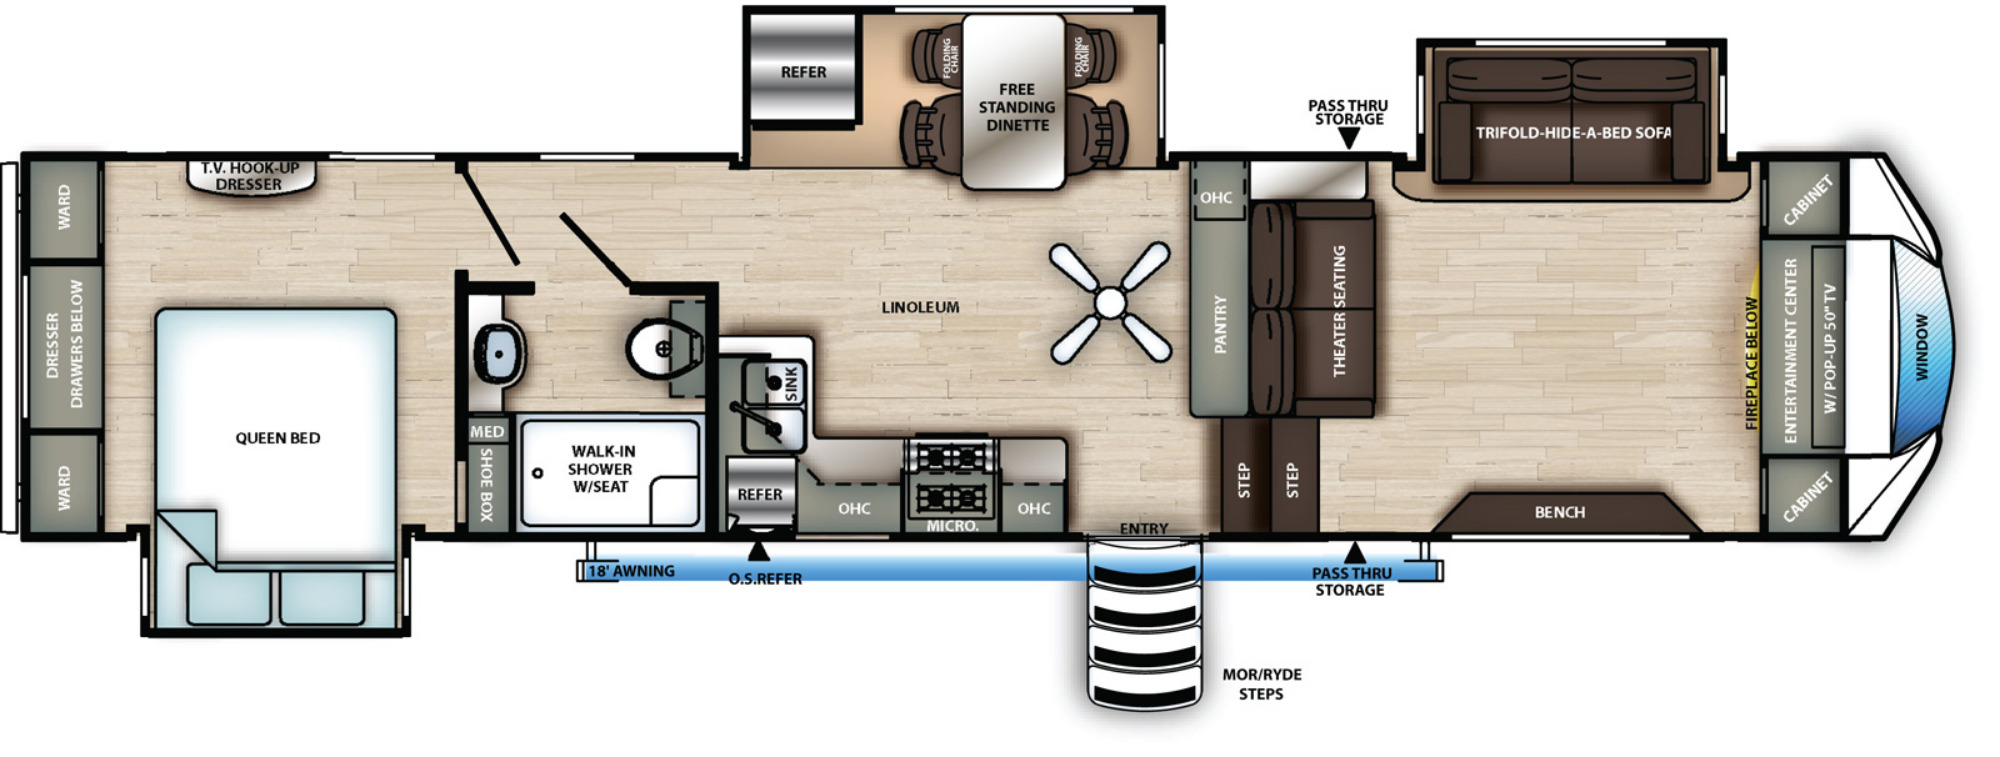 View Floor Plan for 2021 FOREST RIVER SIERRA C-CLASS 3550FL